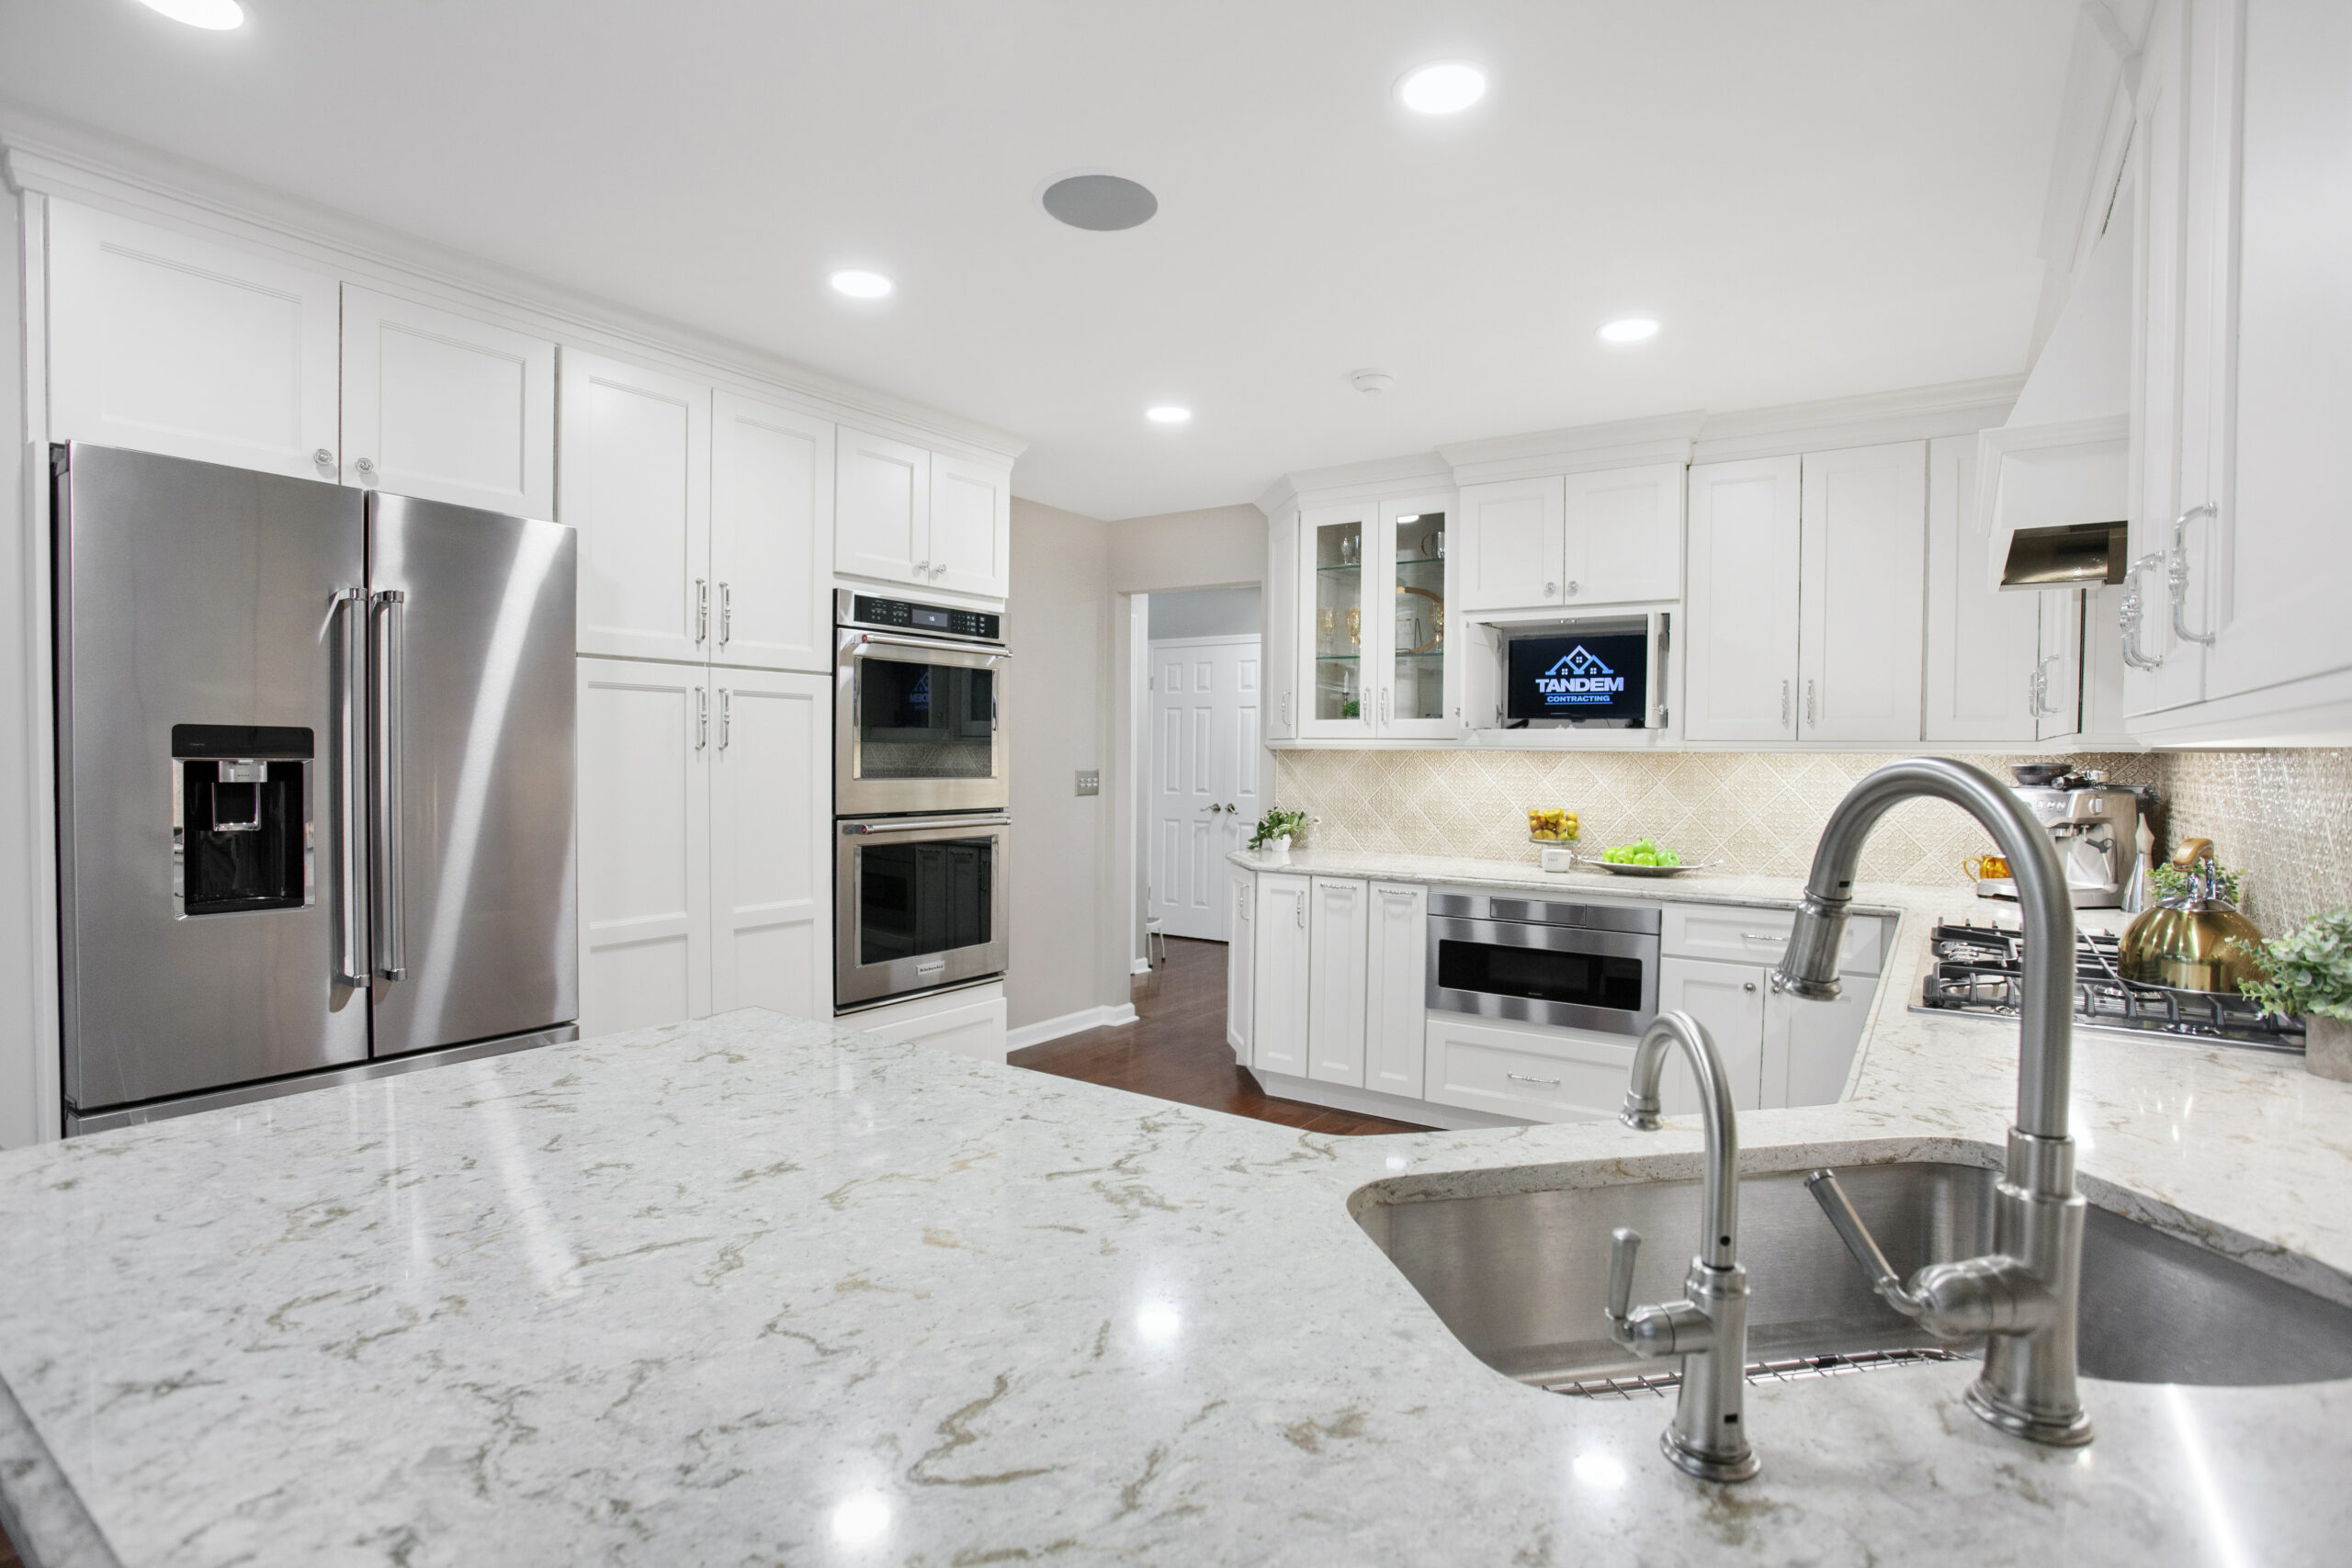 renovated kitchen in a new jersey home.